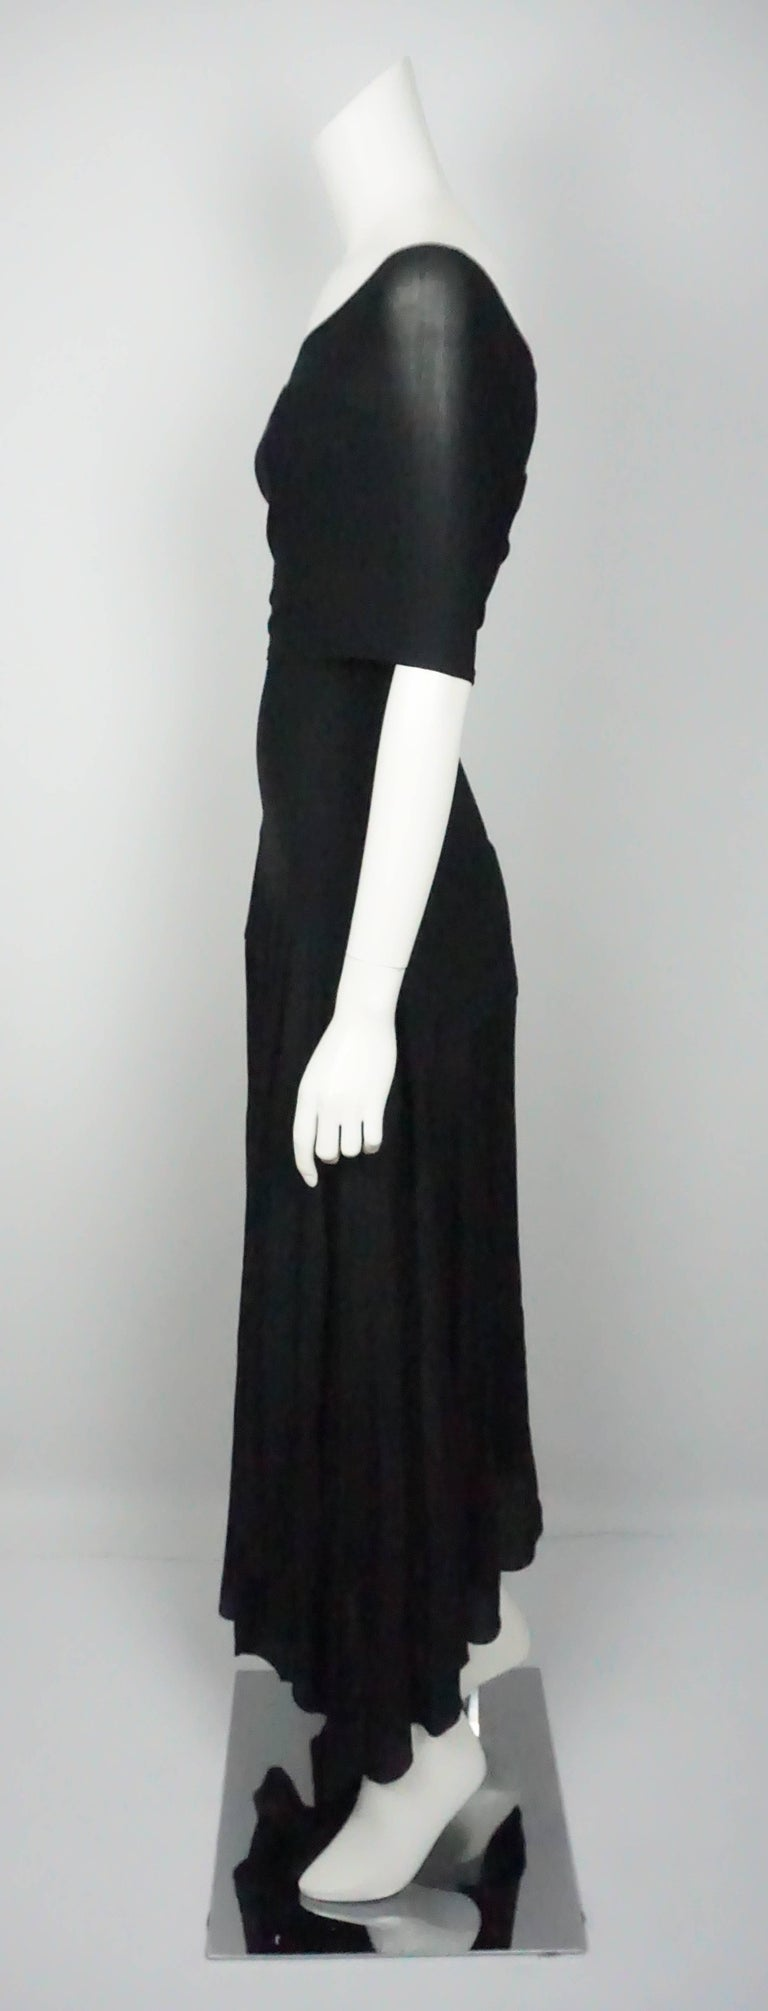 Donna Karan Vintage Black Jersey One Shoulder Dress - Small  This spin on the classic black dress is in excellent condition. The dress is made up of a jersey material and is form fitting until it hits the hips. There is an elastic band sewn in at